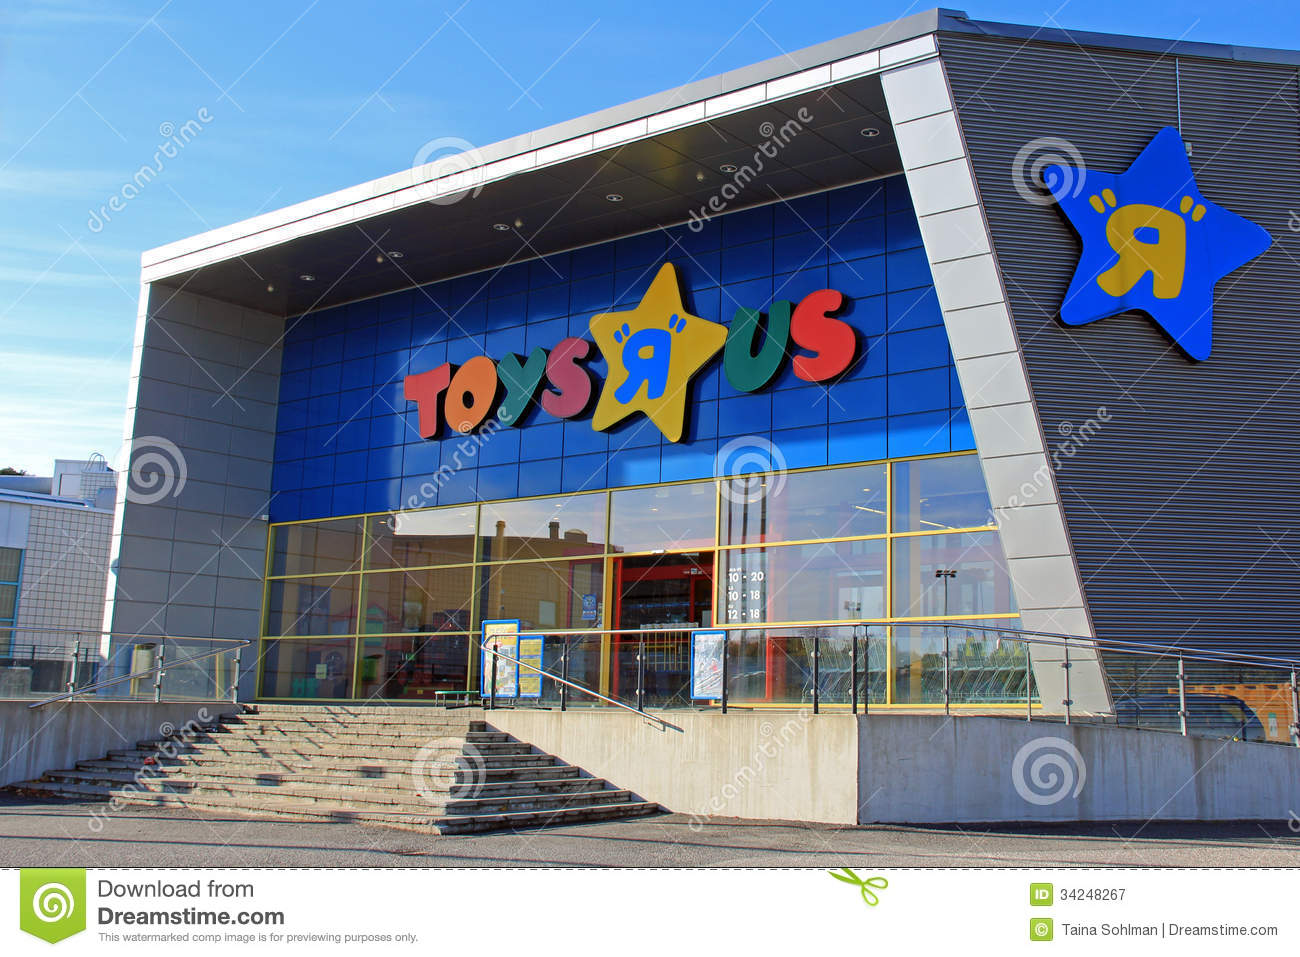 Toys r us store in turku finland editorial photography image 34248267 - Maisonnette toys r us ...